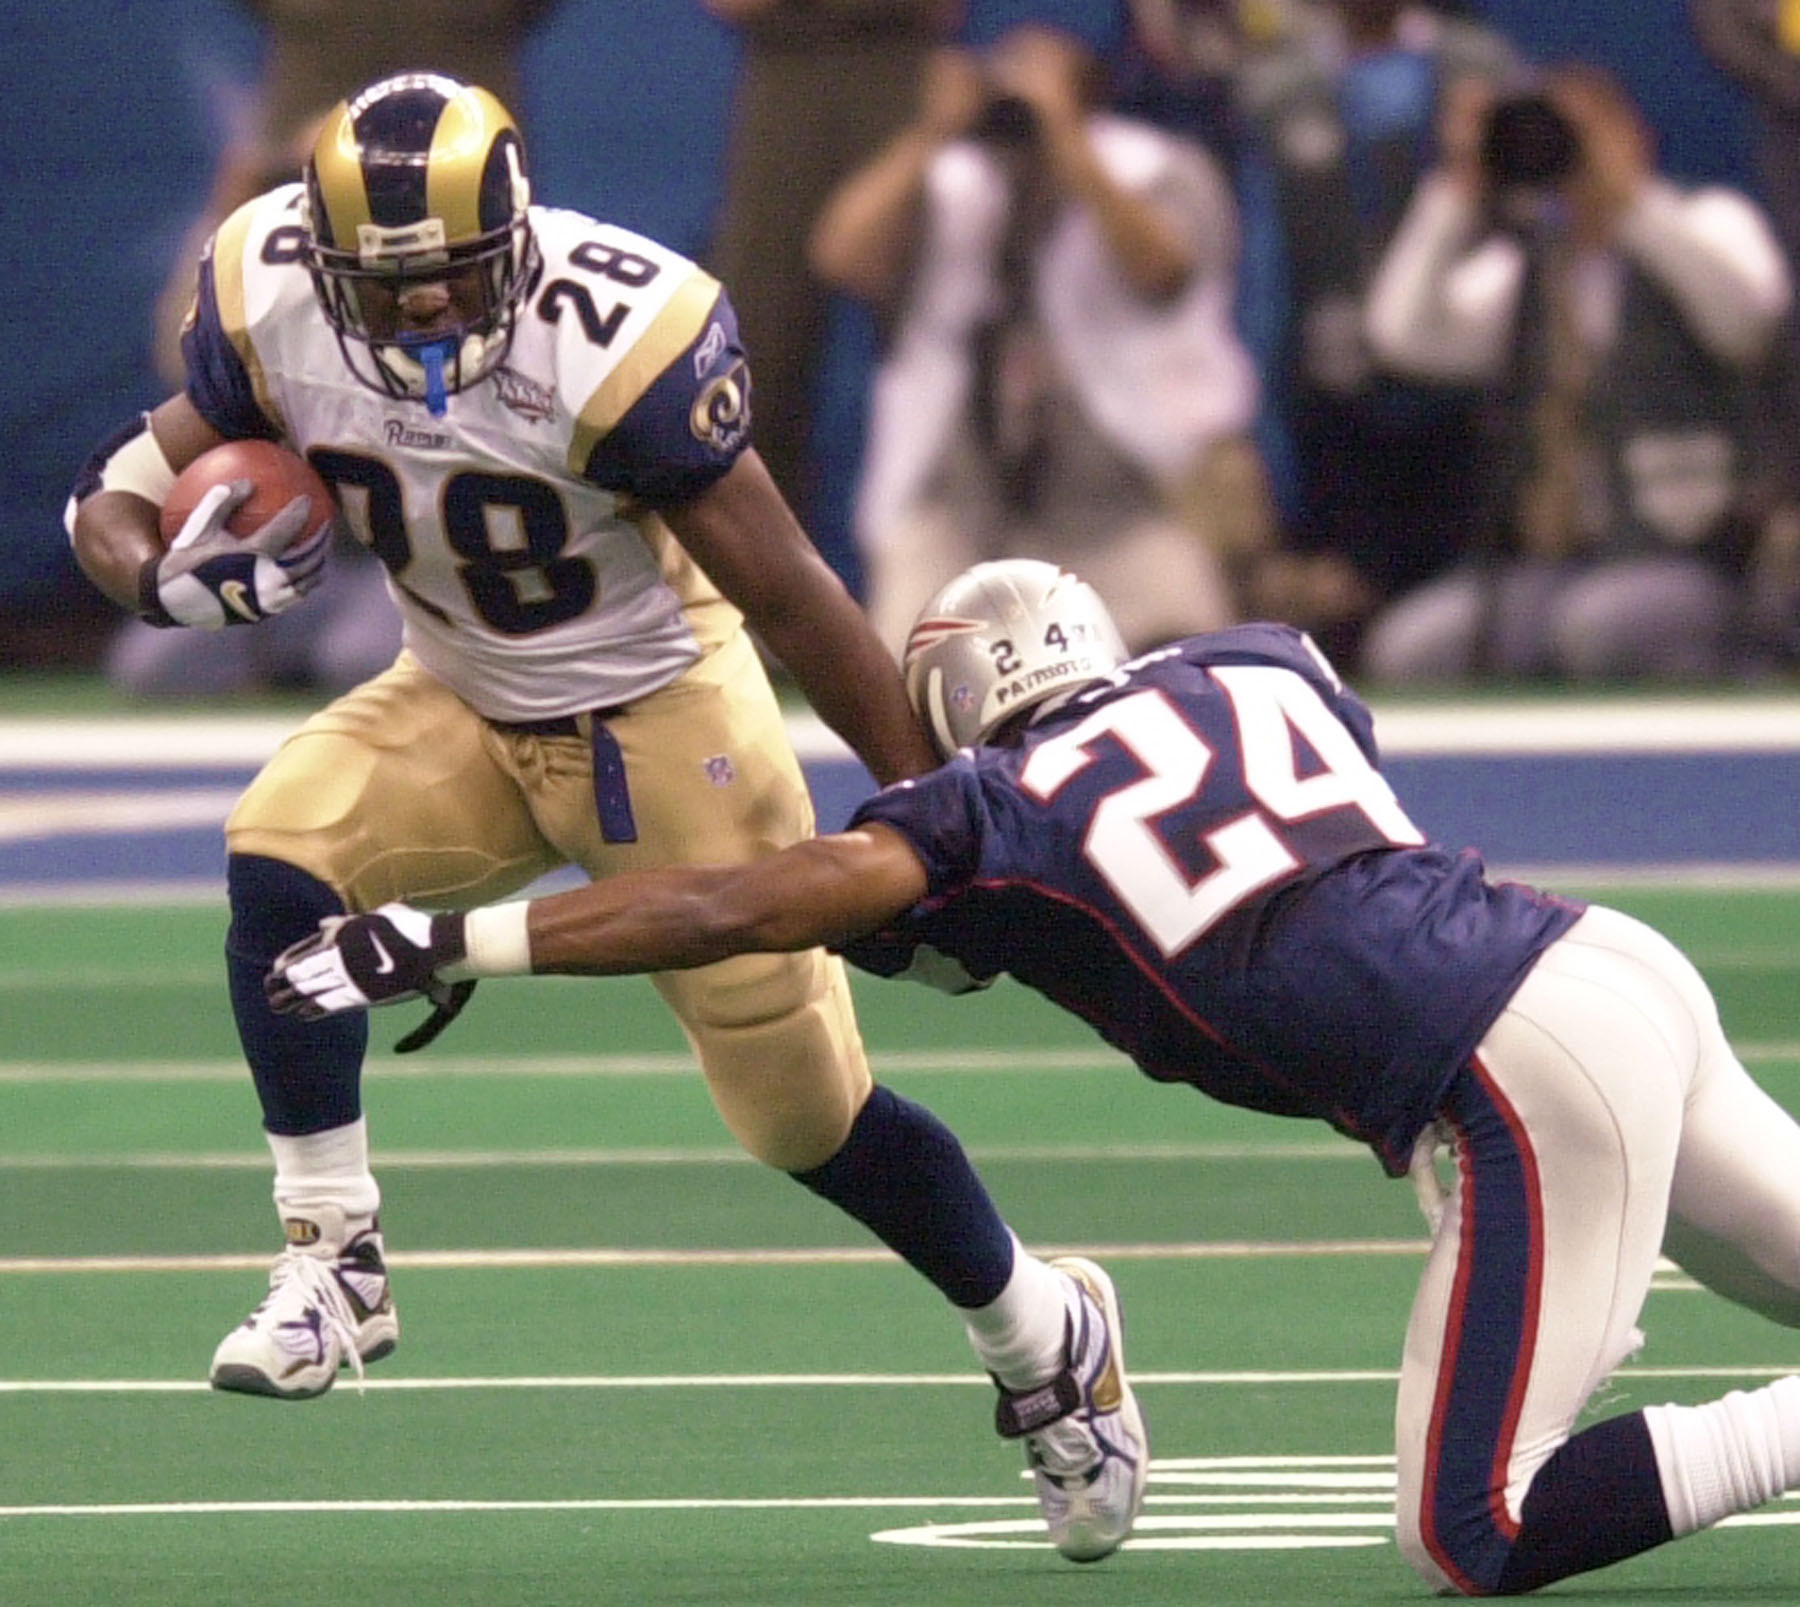 ... St. Louis Rams running back Marshall Faulk (28) fending off New England  Patriots cornerback Ty Law (24) during first-quarter play of Super Bowl  XXXVI in ... eb448bf9a